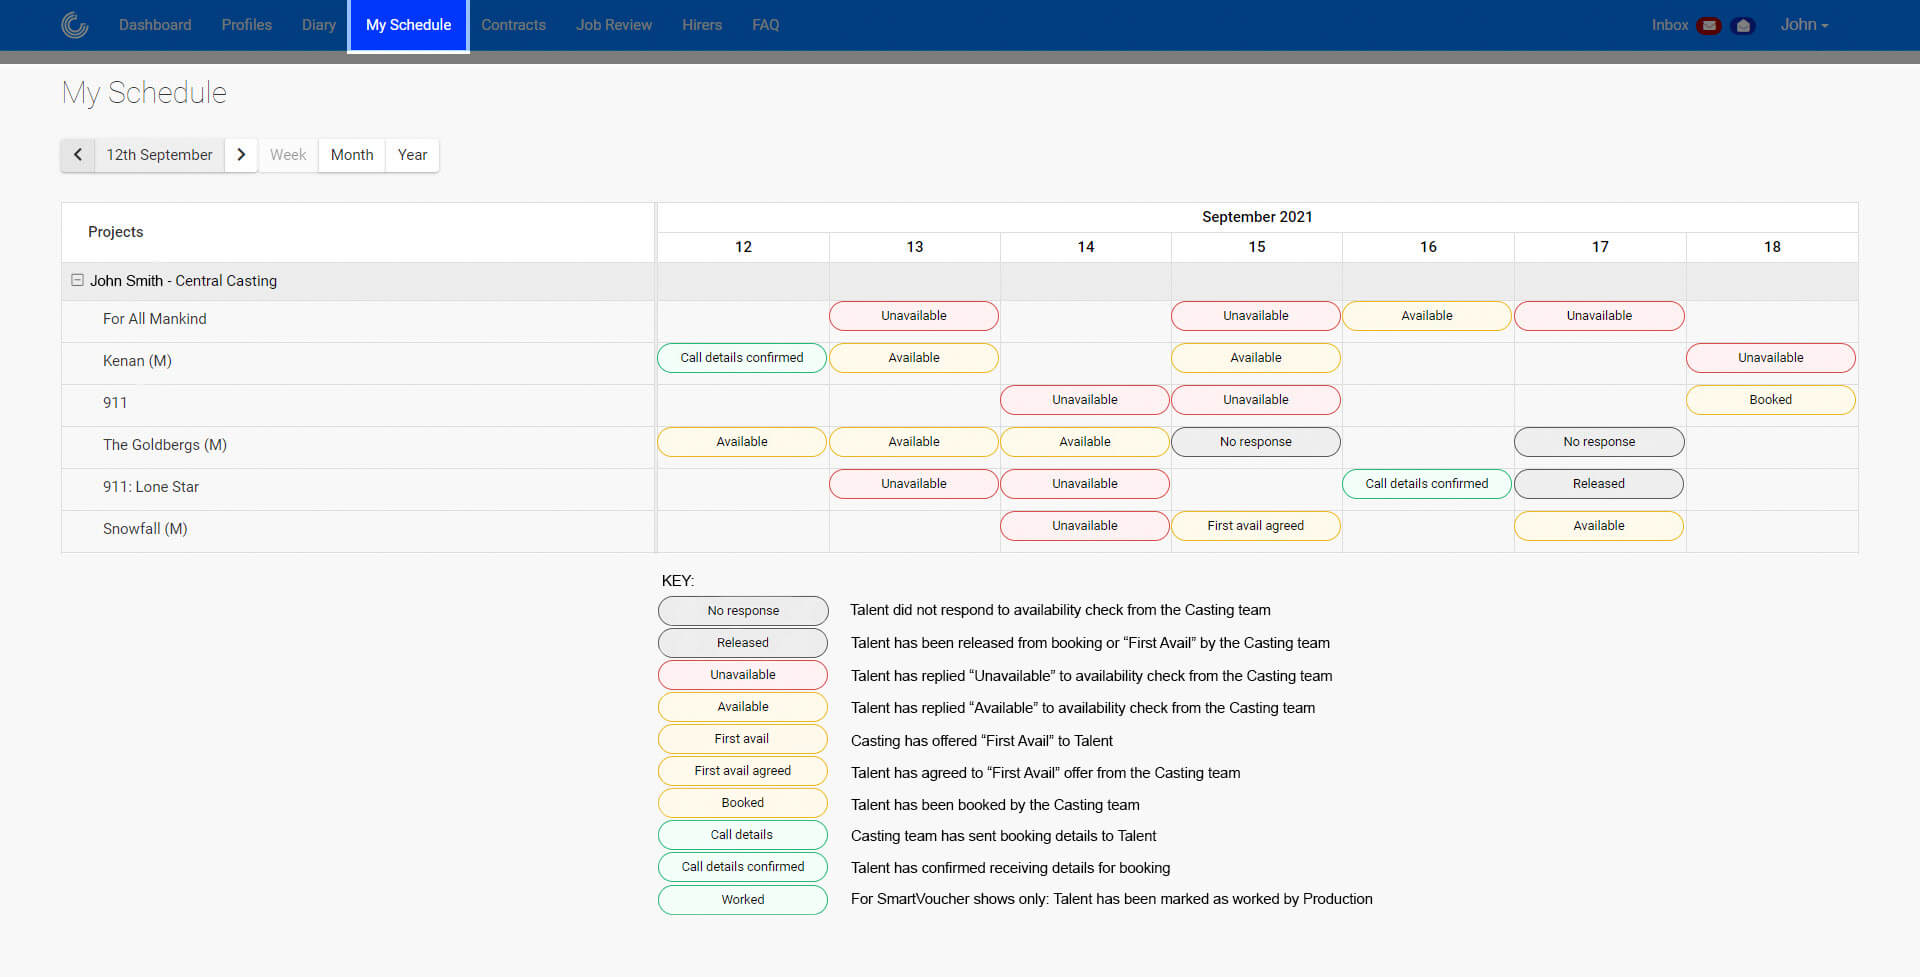 Screenshot of the My Schedule section of the Casting Platform.